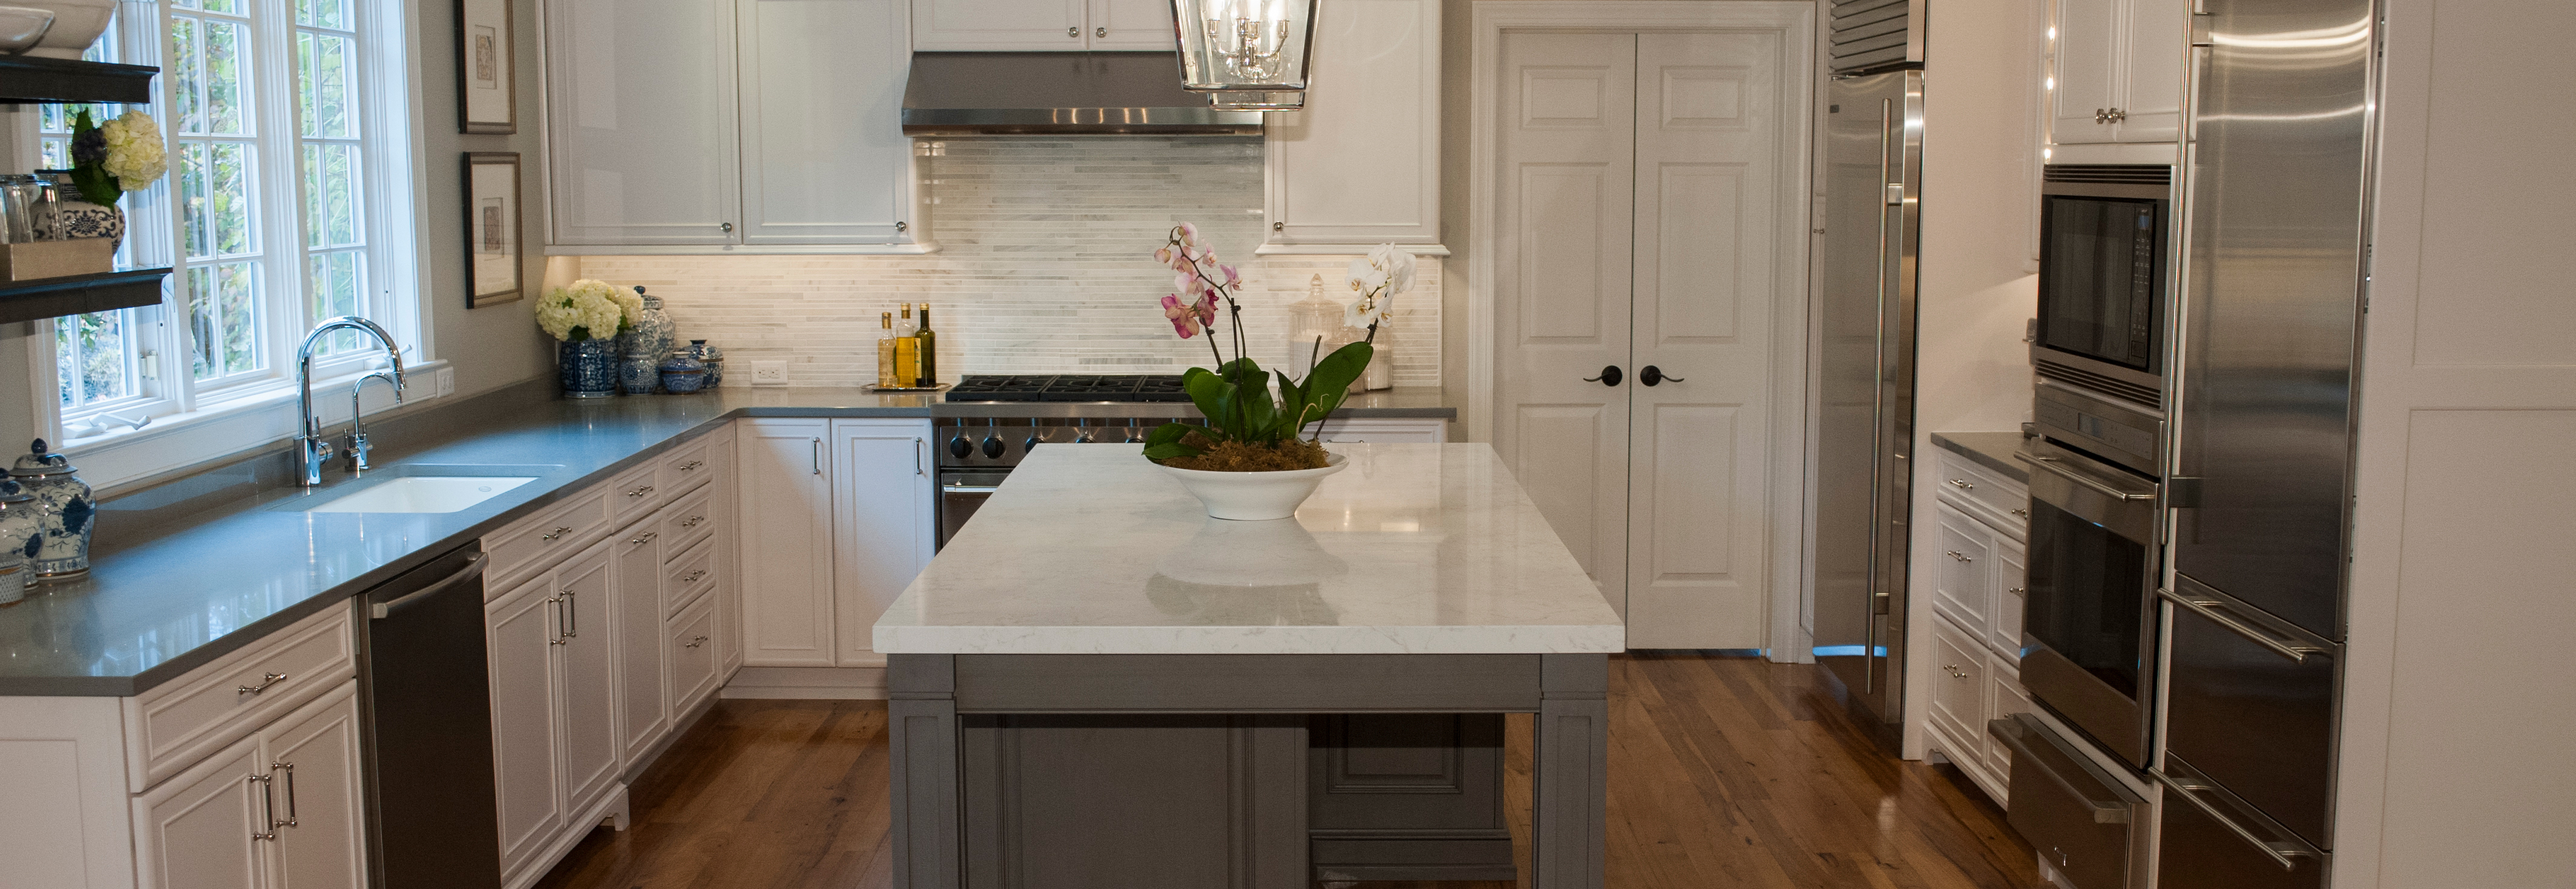 kitchen remodeler west chester pa pine street carpenters